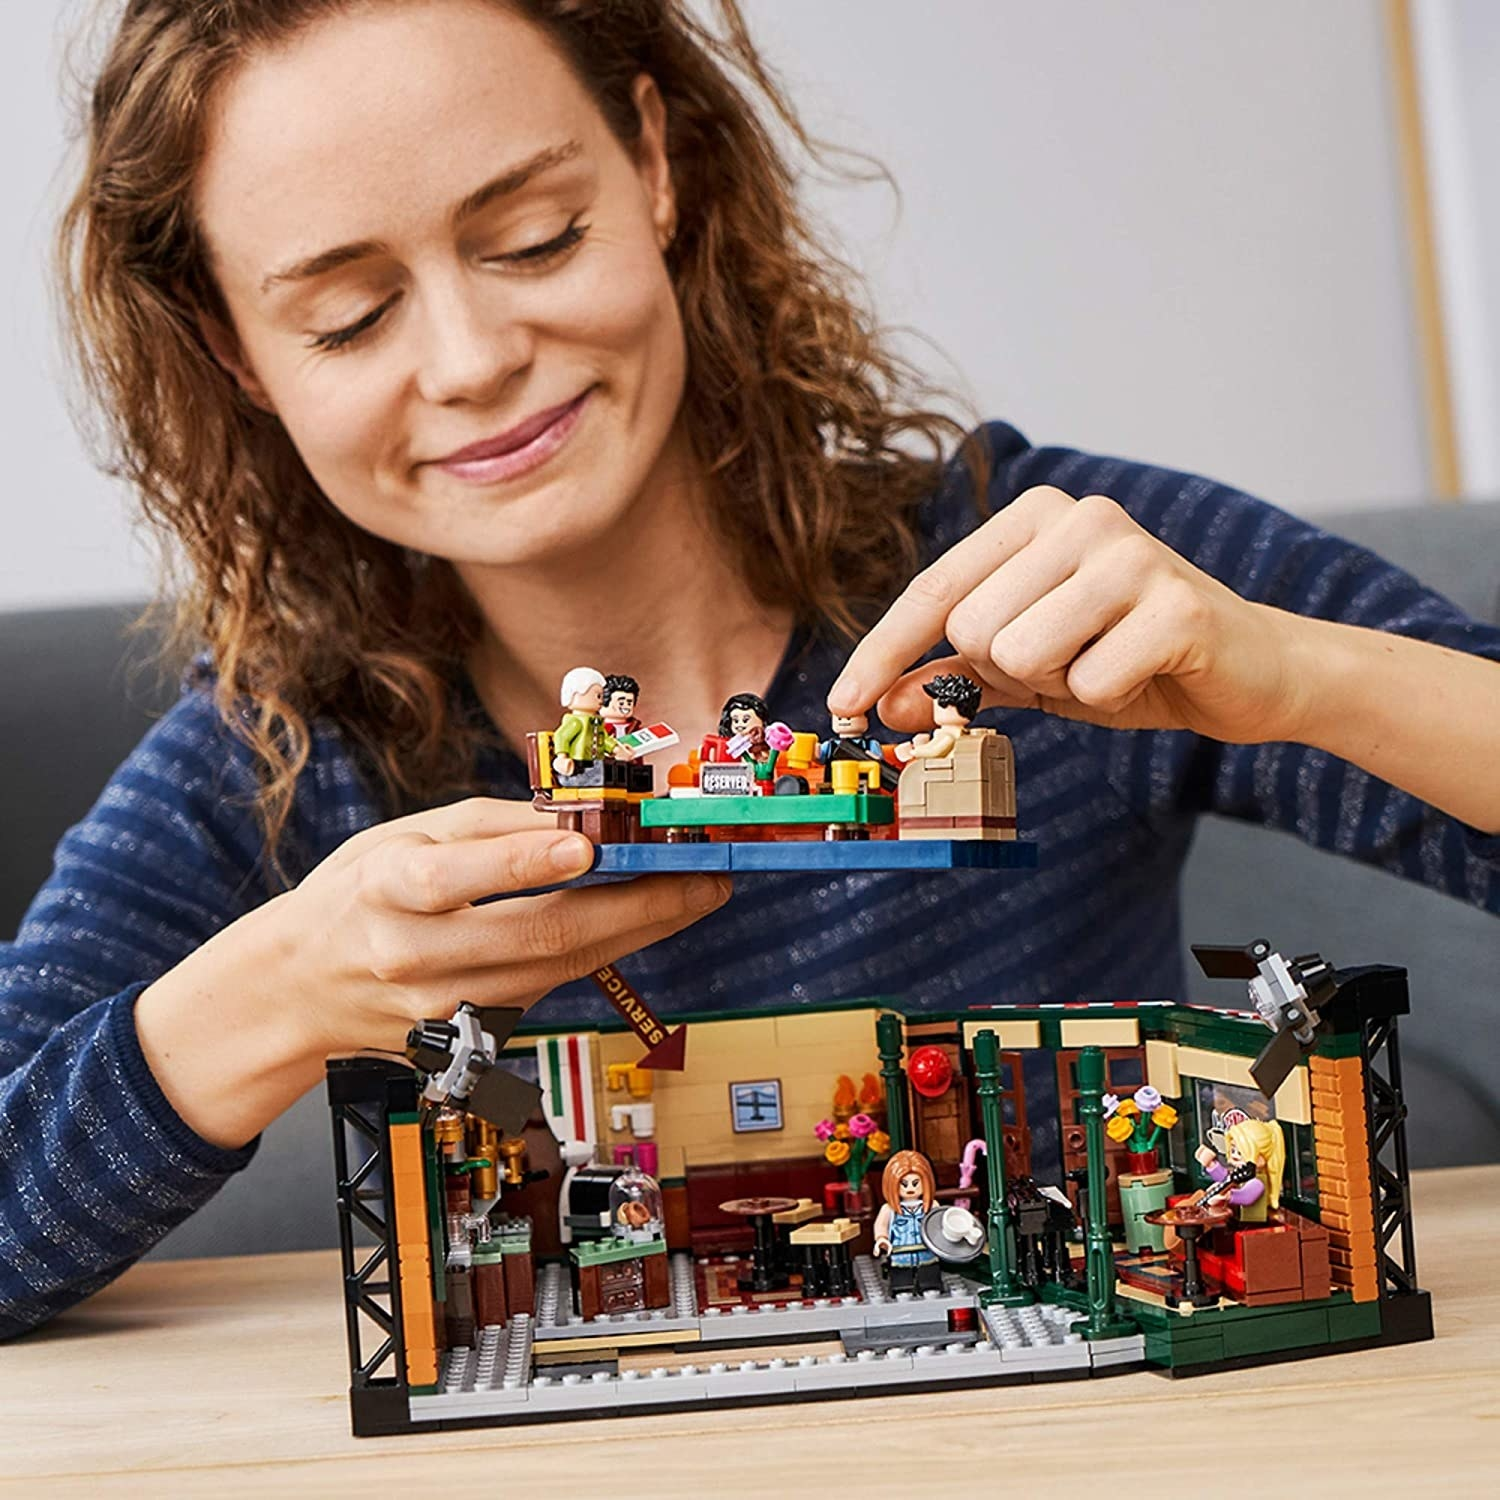 A person putting together the Lego set